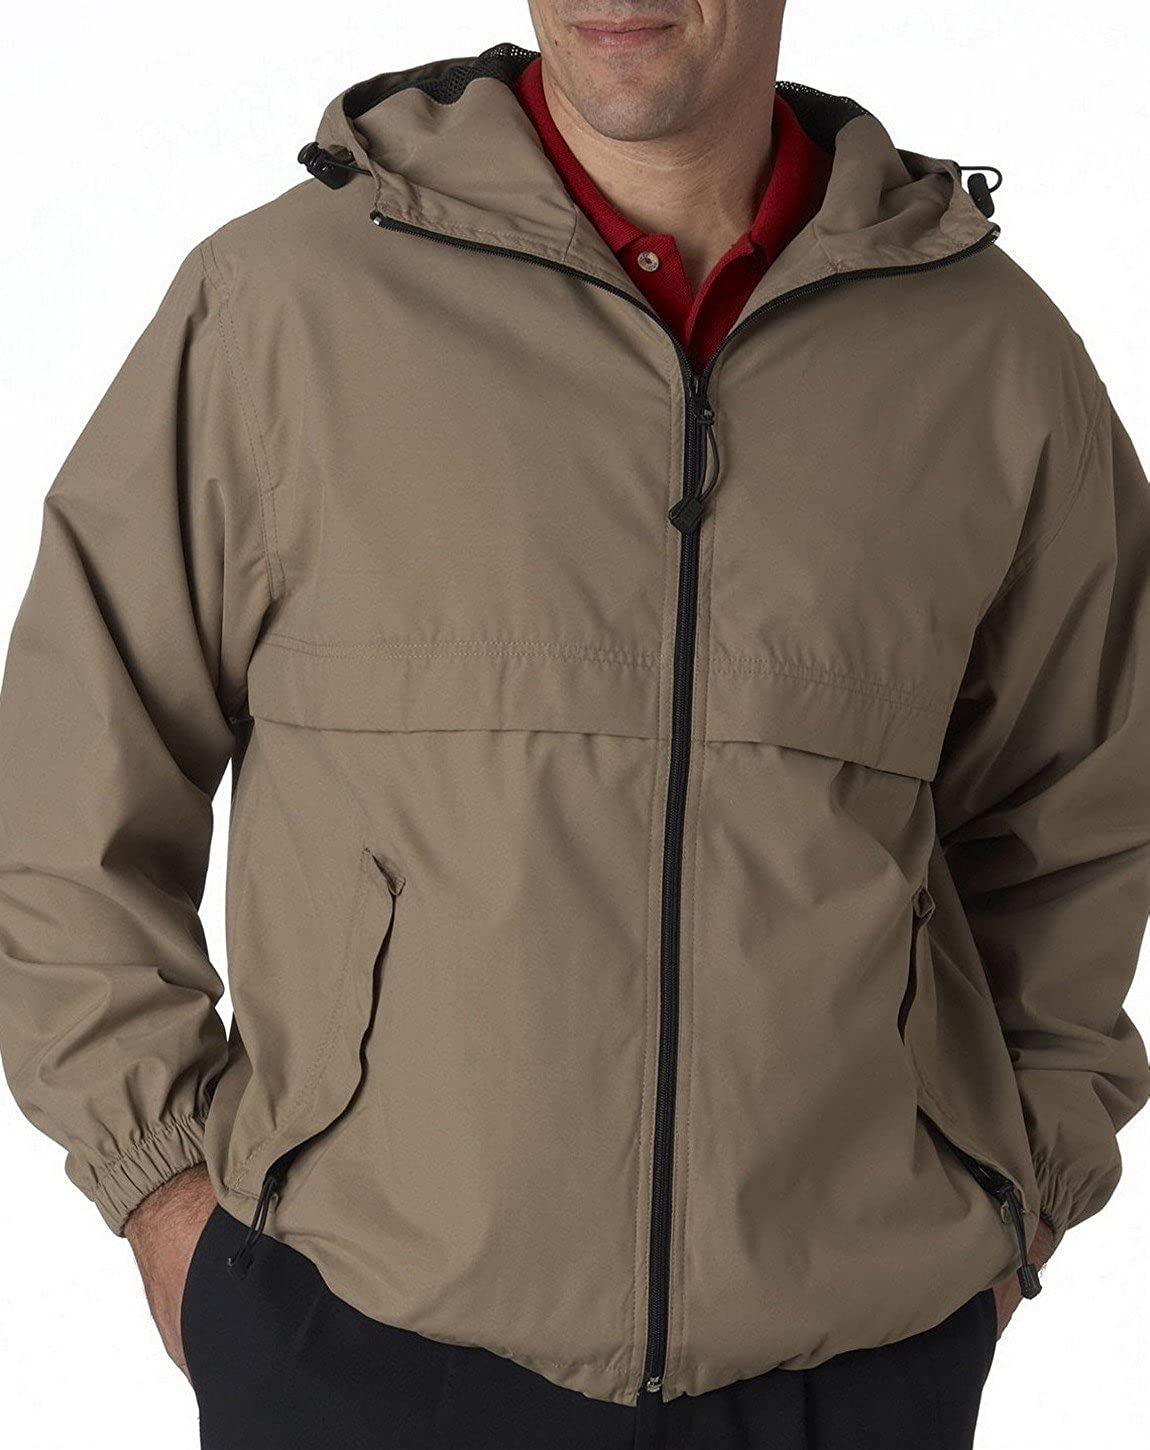 UltraClub 8908 Hooded Zip Jacket